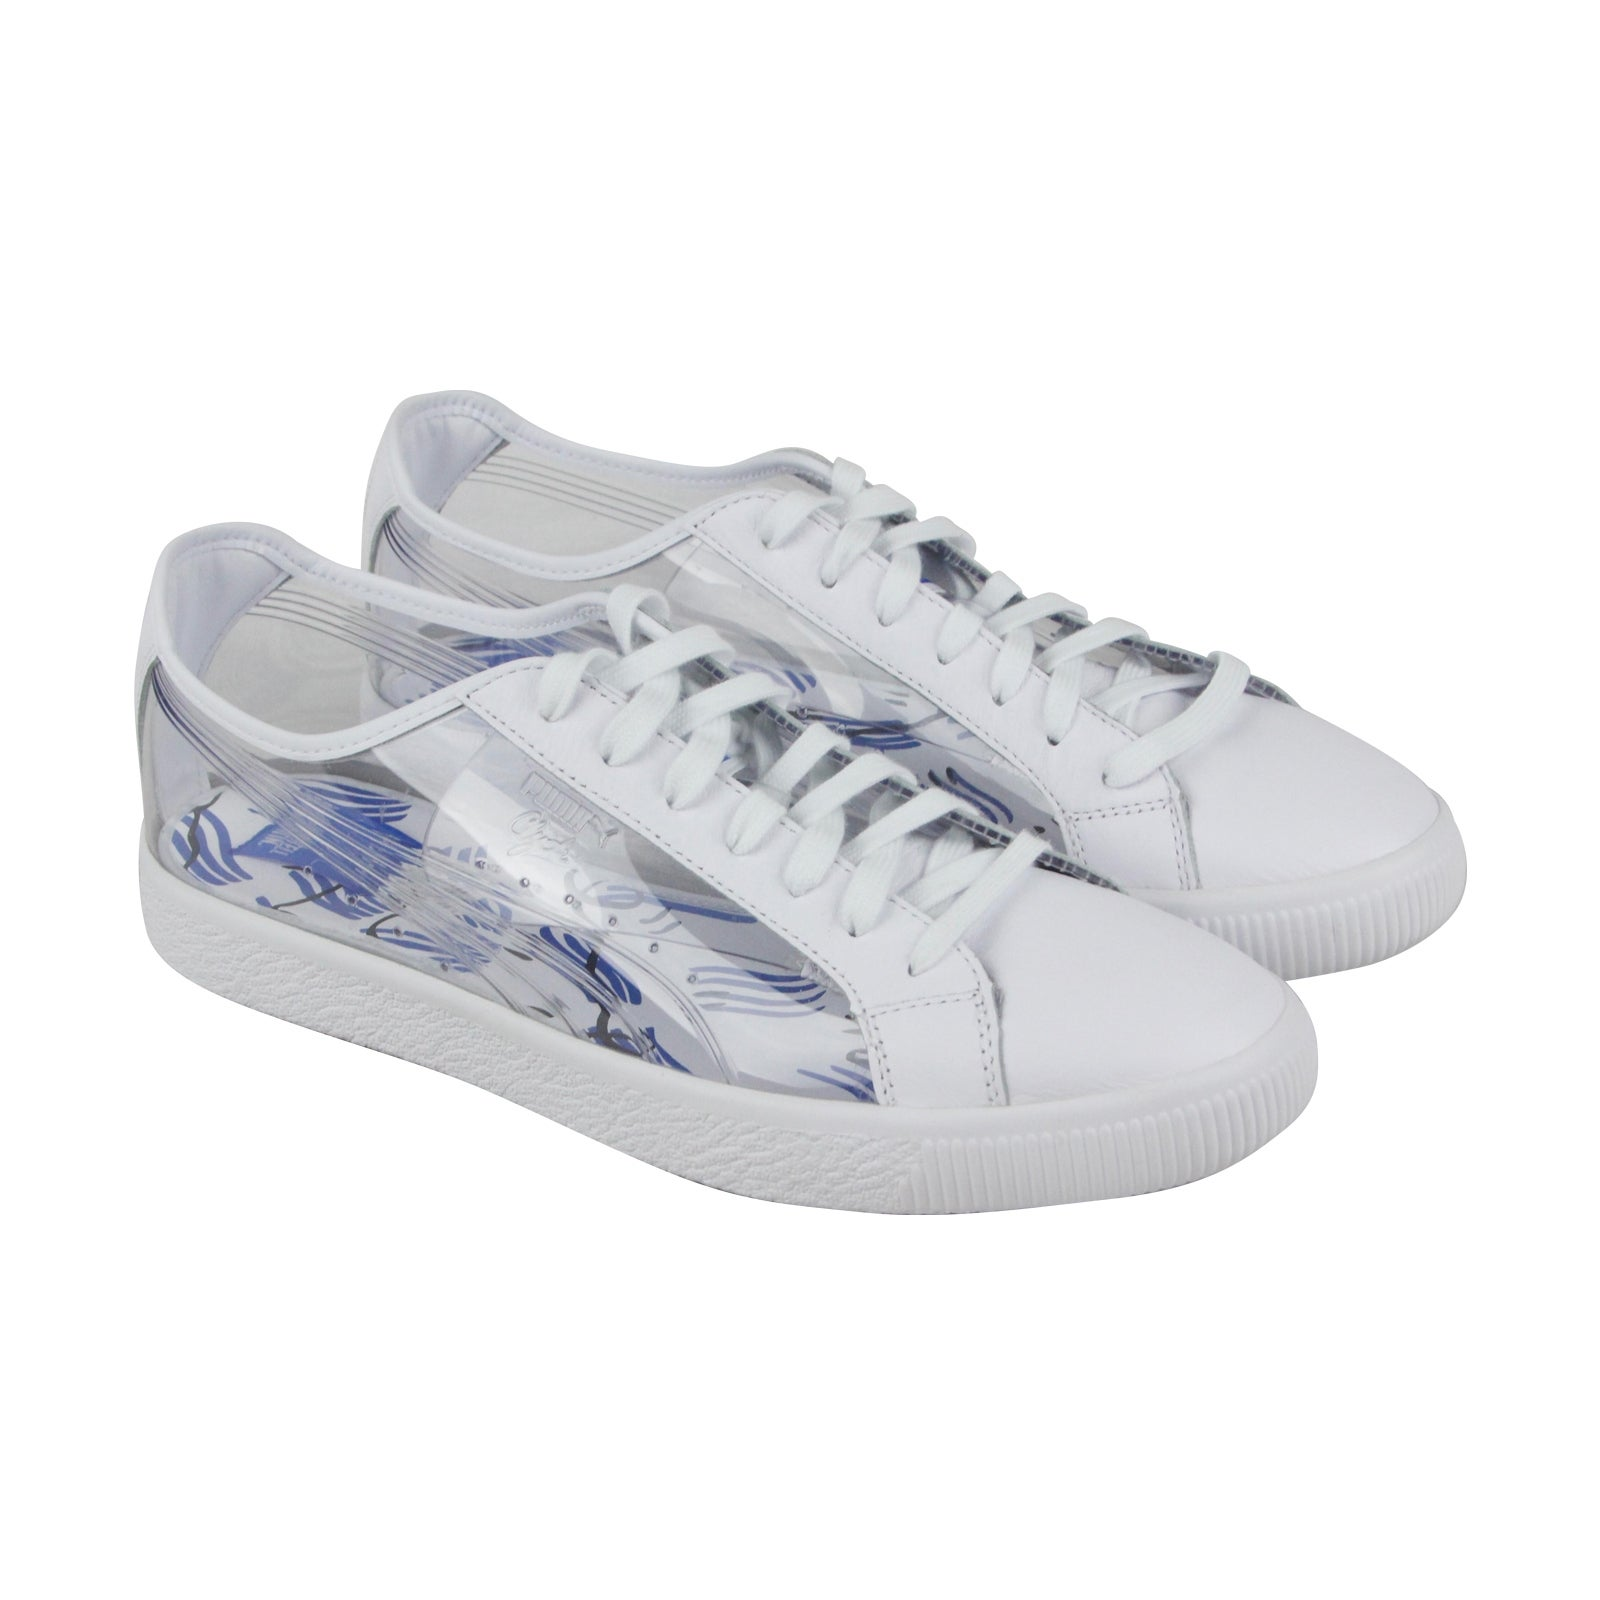 Puma Clyde Clear Sm Mens White Leather Lace Up Sneakers Shoes